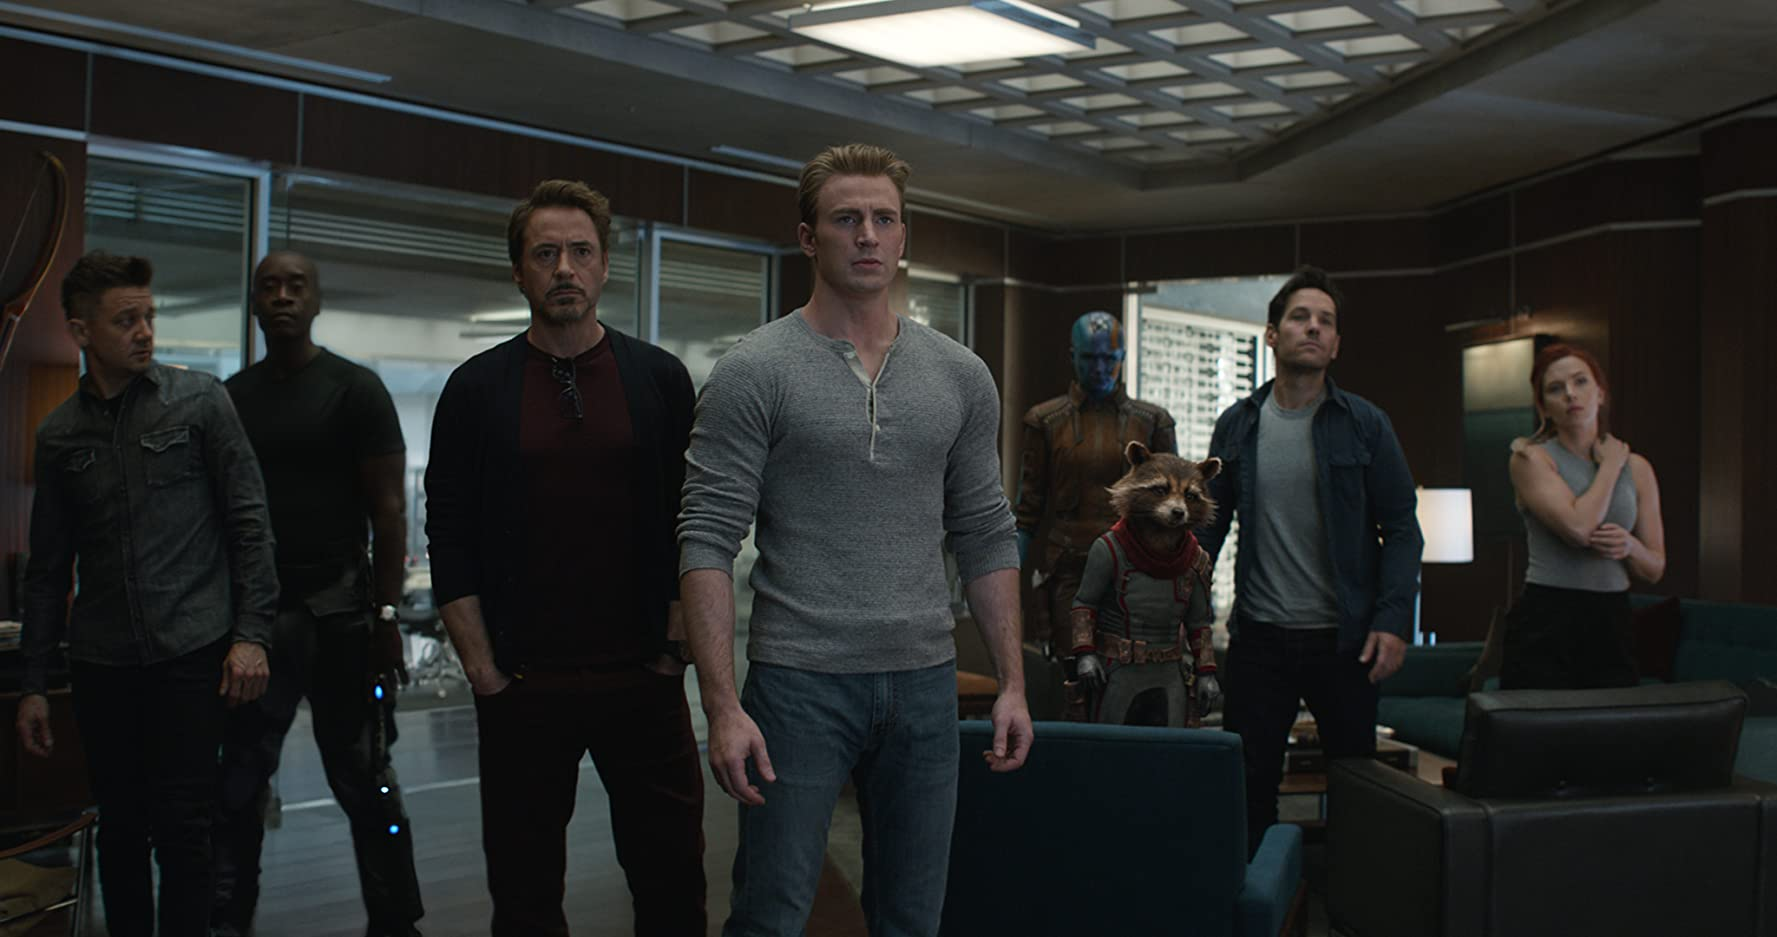 Don Cheadle, Robert Downey Jr., Bradley Cooper, Chris Evans, Scarlett Johansson, Jeremy Renner, Paul Rudd, and Karen Gillan in Avengers: Endgame (2019)